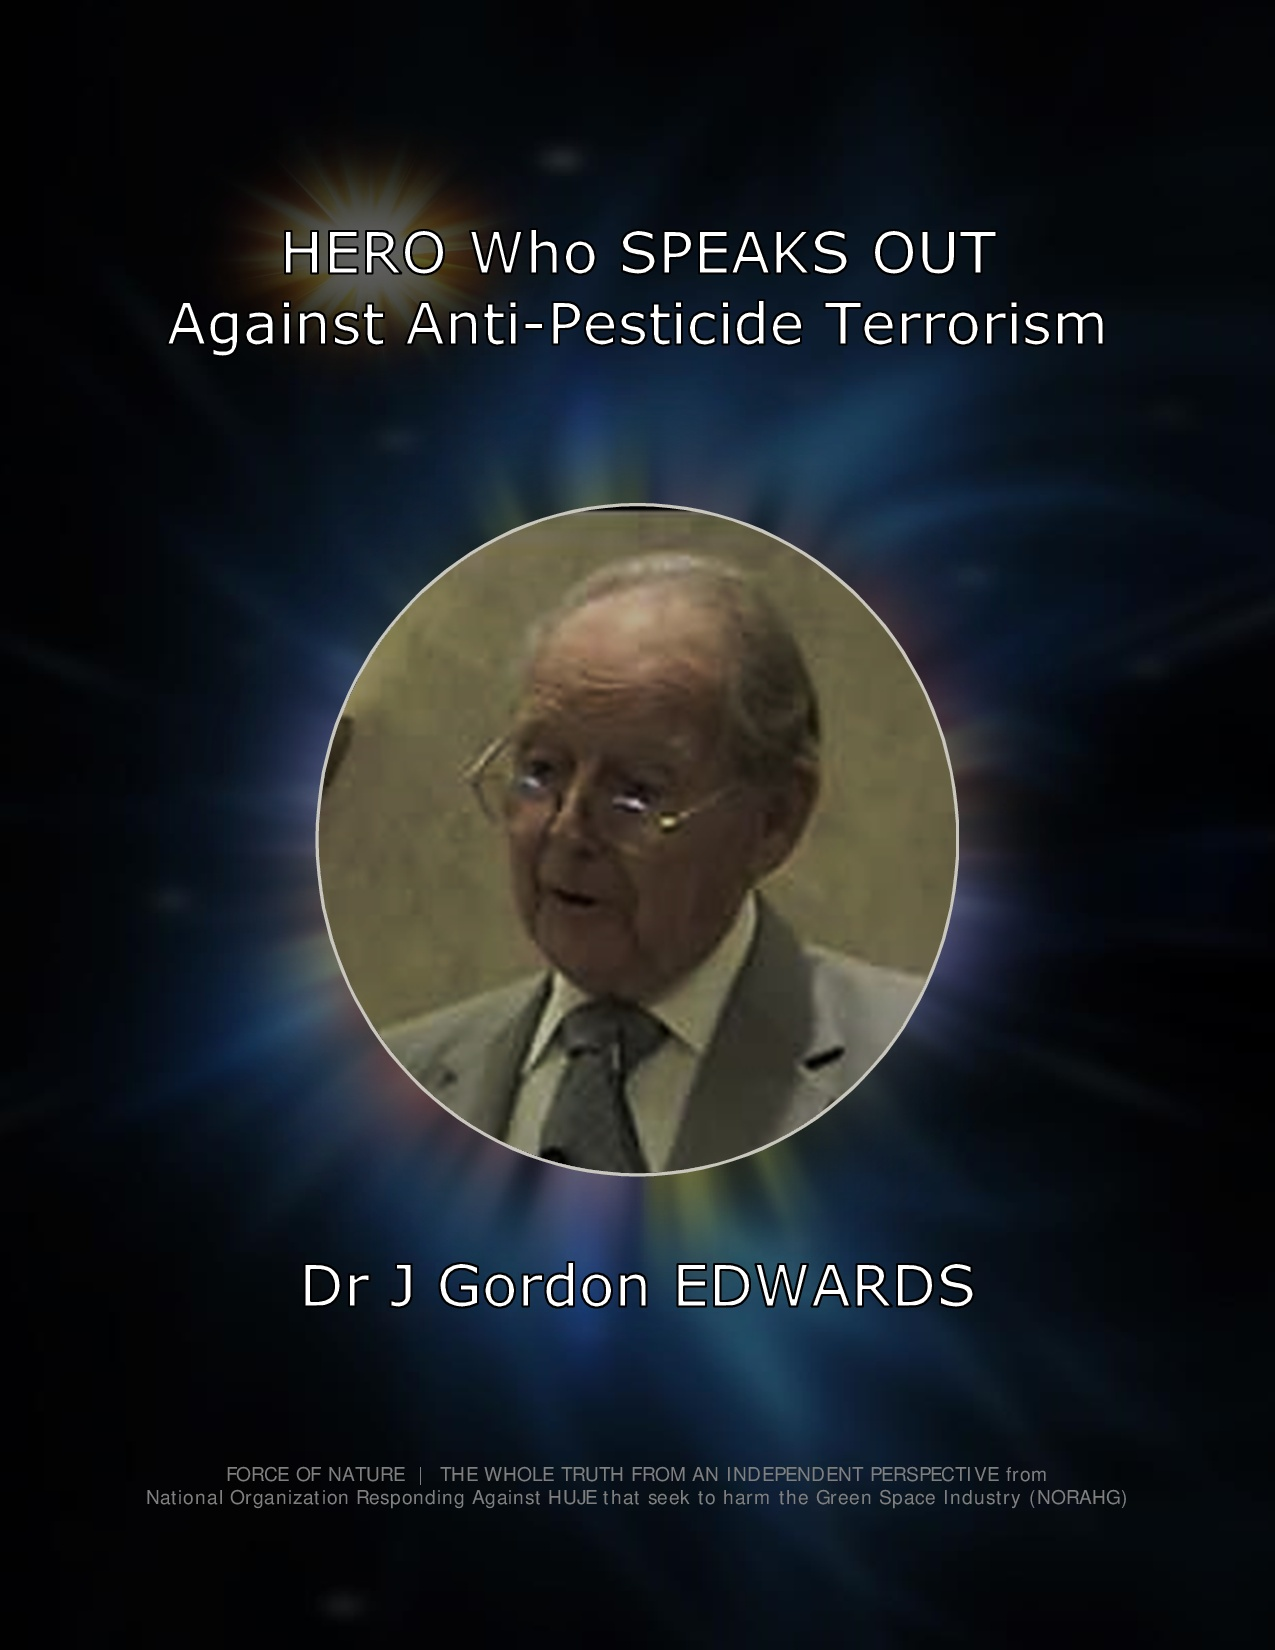 EDWARDS, Dr J Gordon